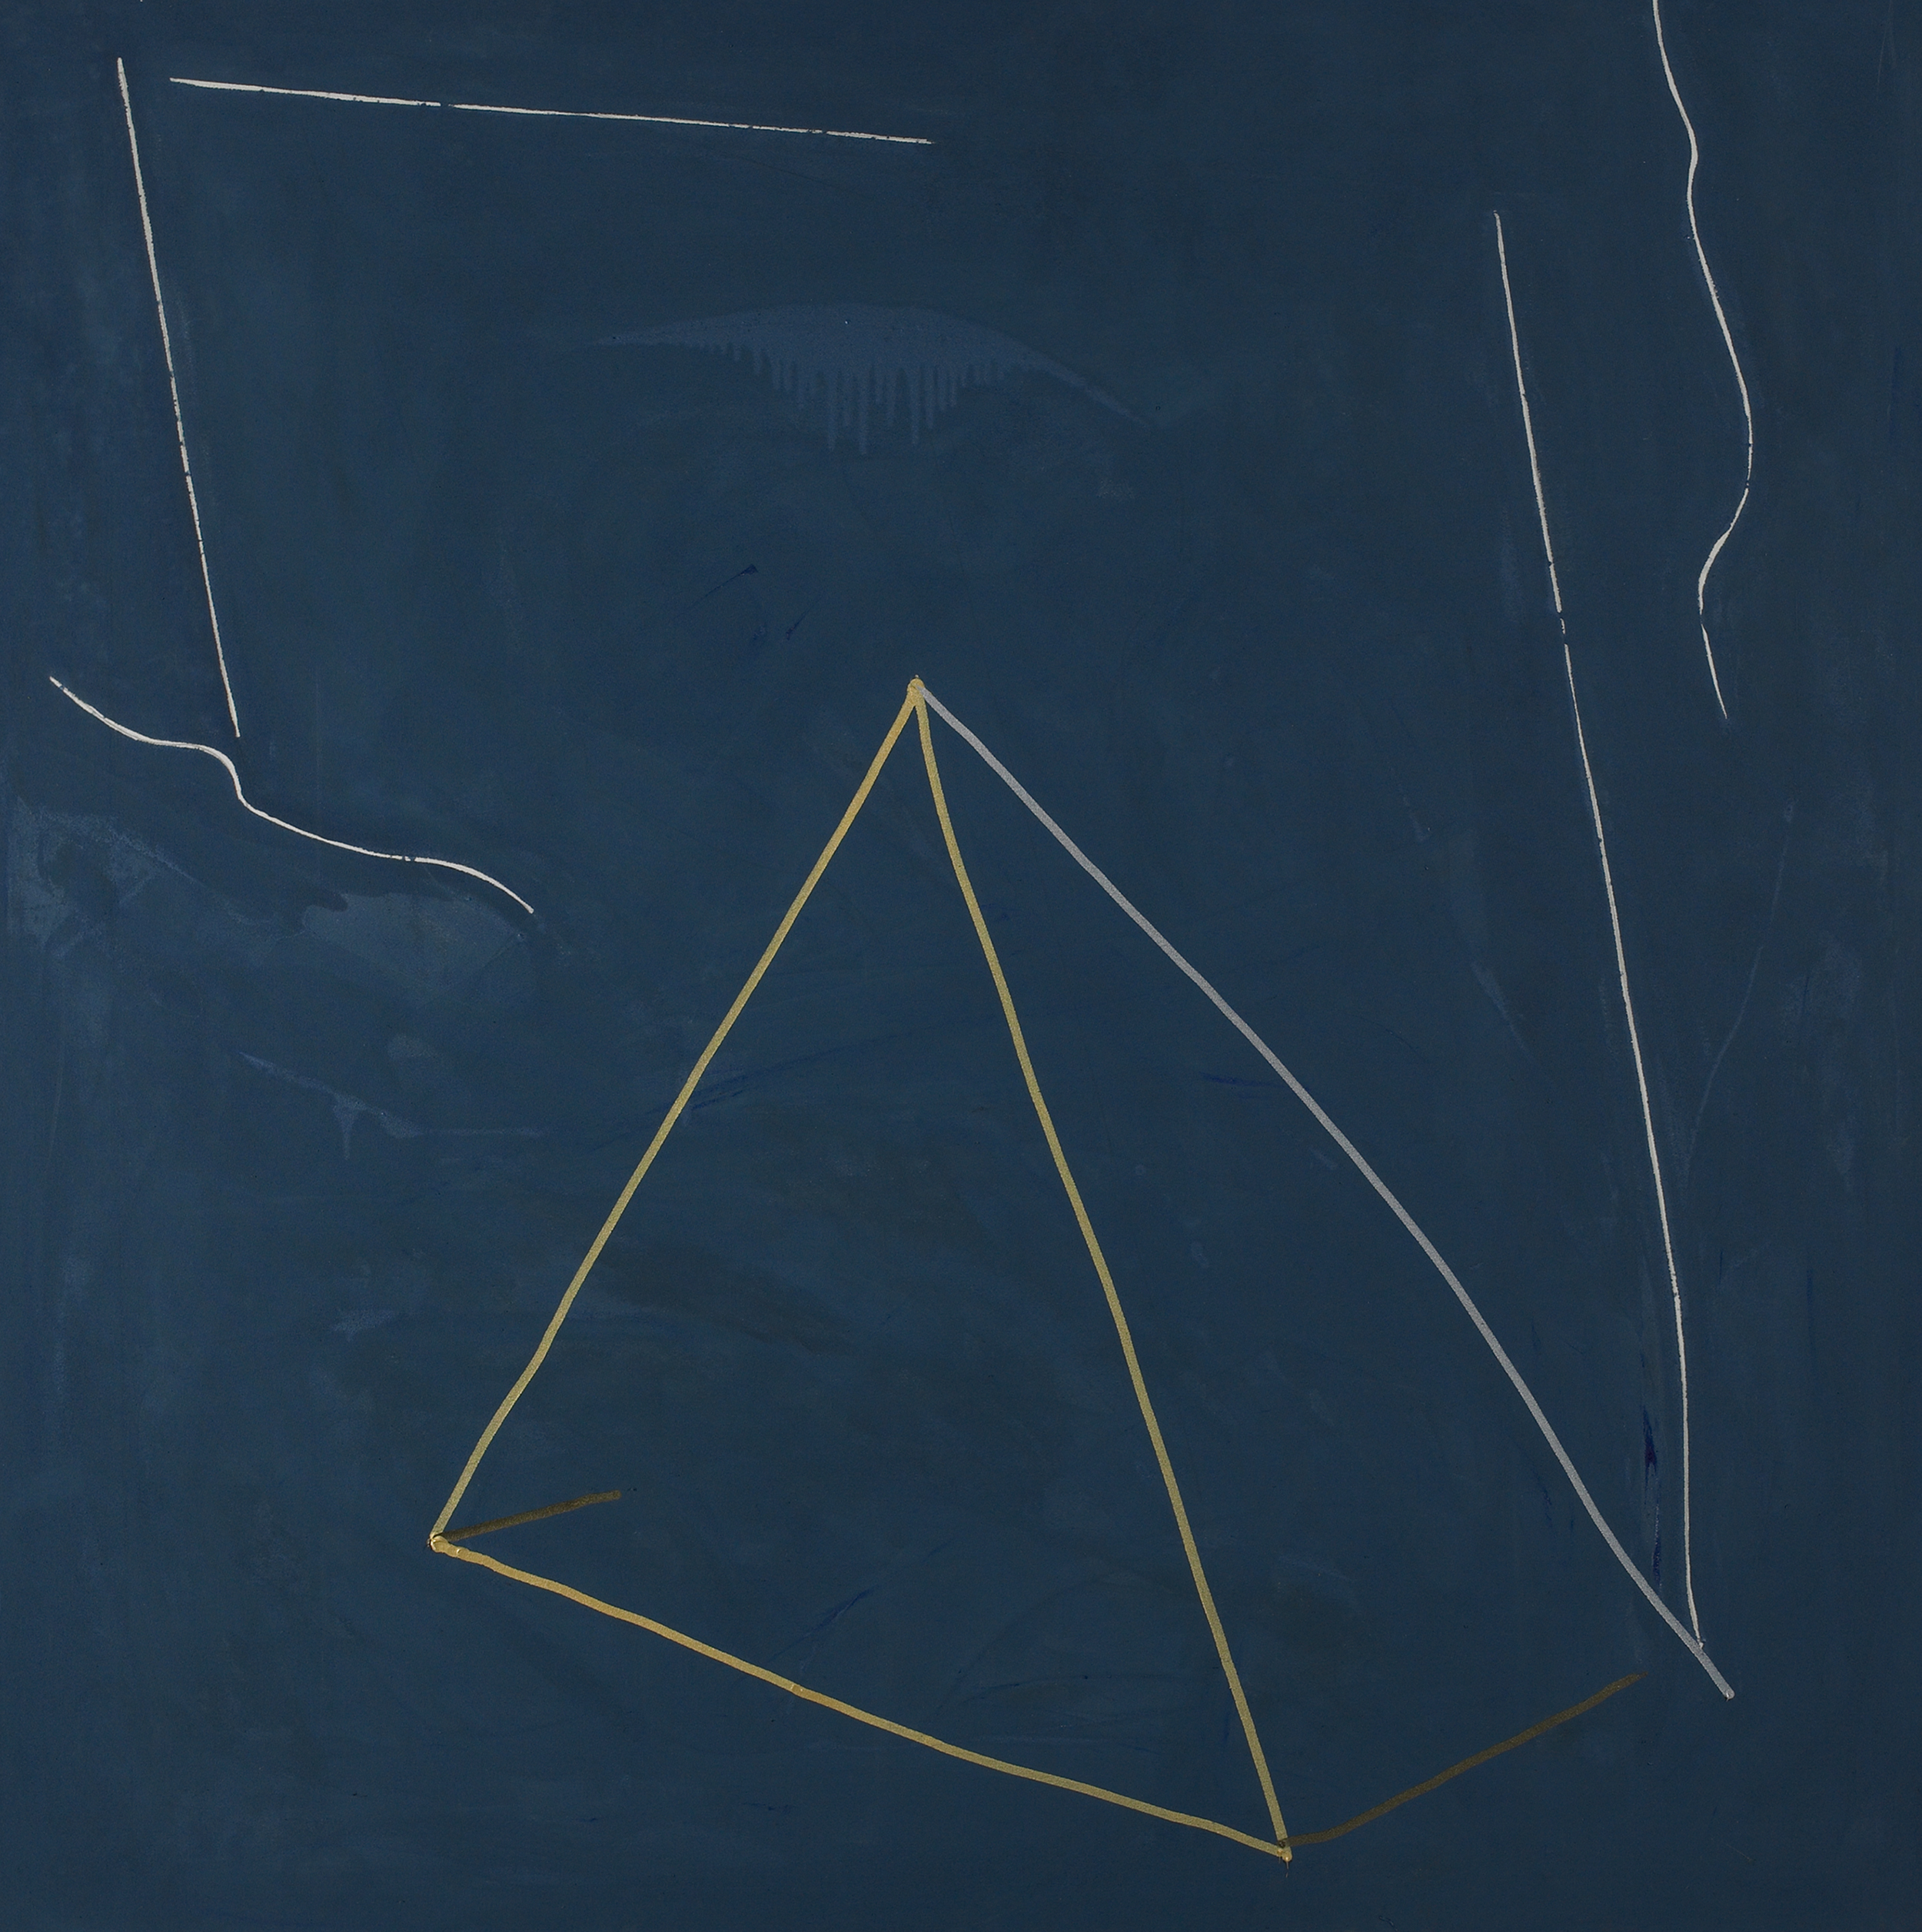 Mirabile Dictu - 8  , Acrylic on canvas, 1981, 66 x 66 inches